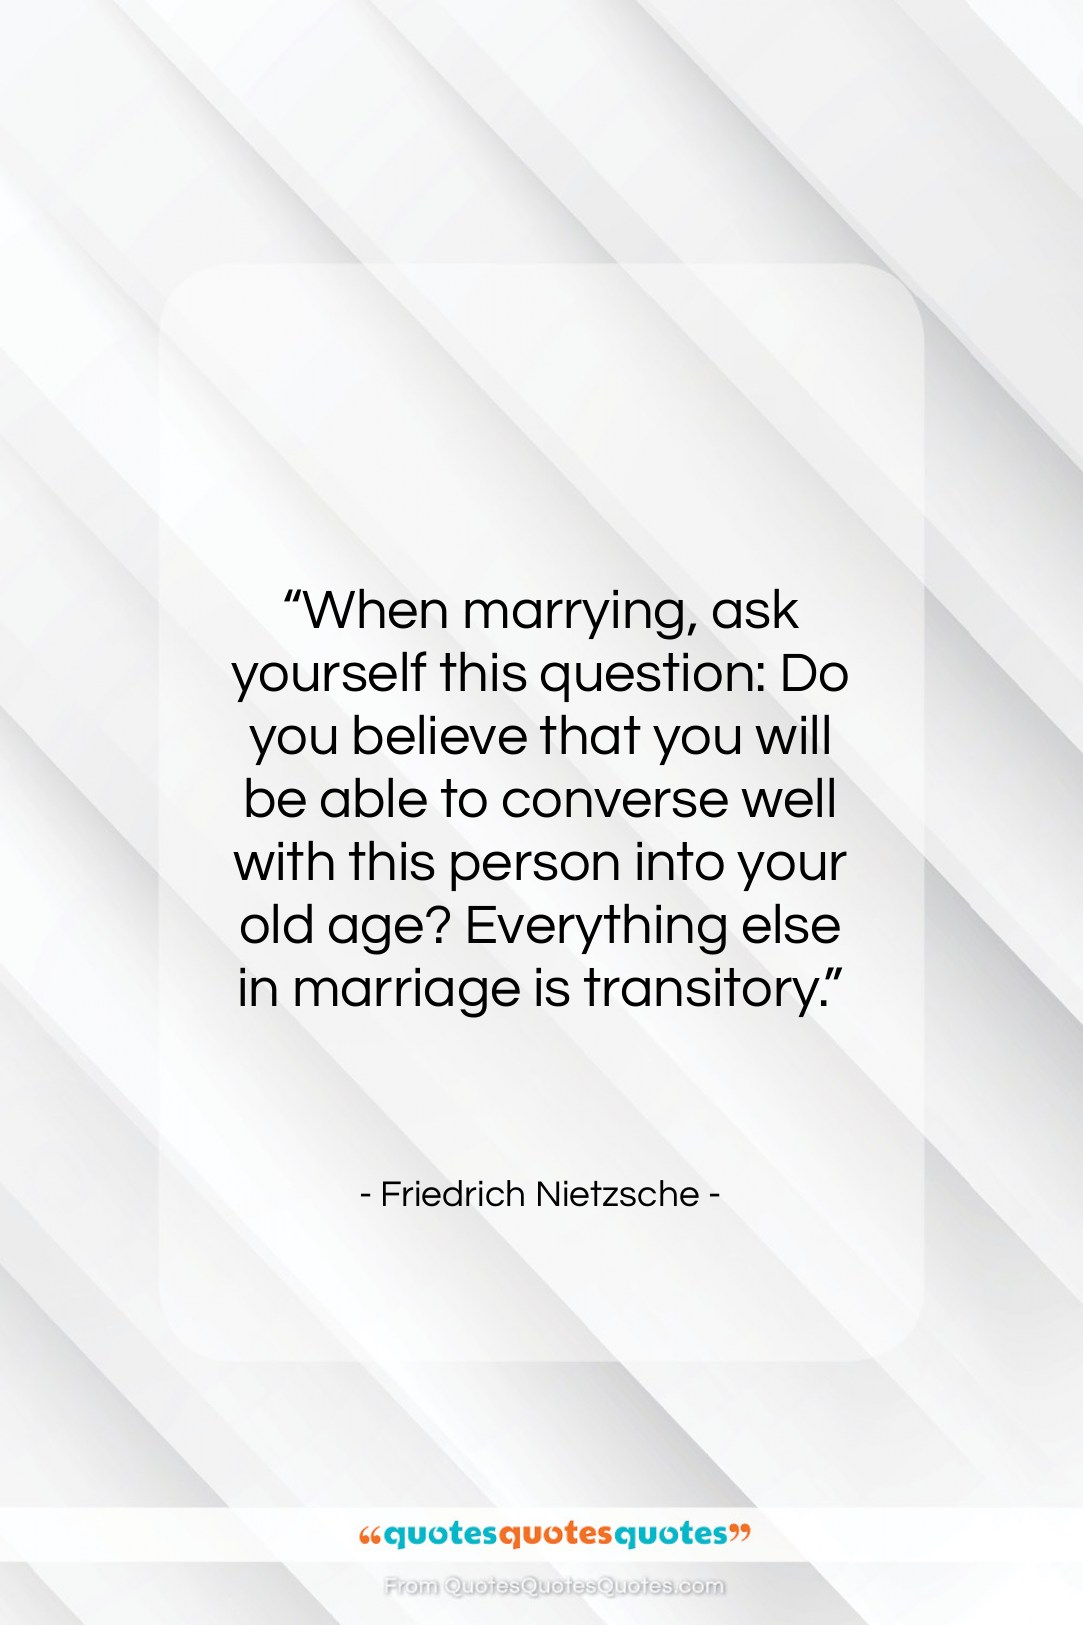 """Friedrich Nietzsche quote: """"When marrying, ask yourself this question: Do…""""- at QuotesQuotesQuotes.com"""